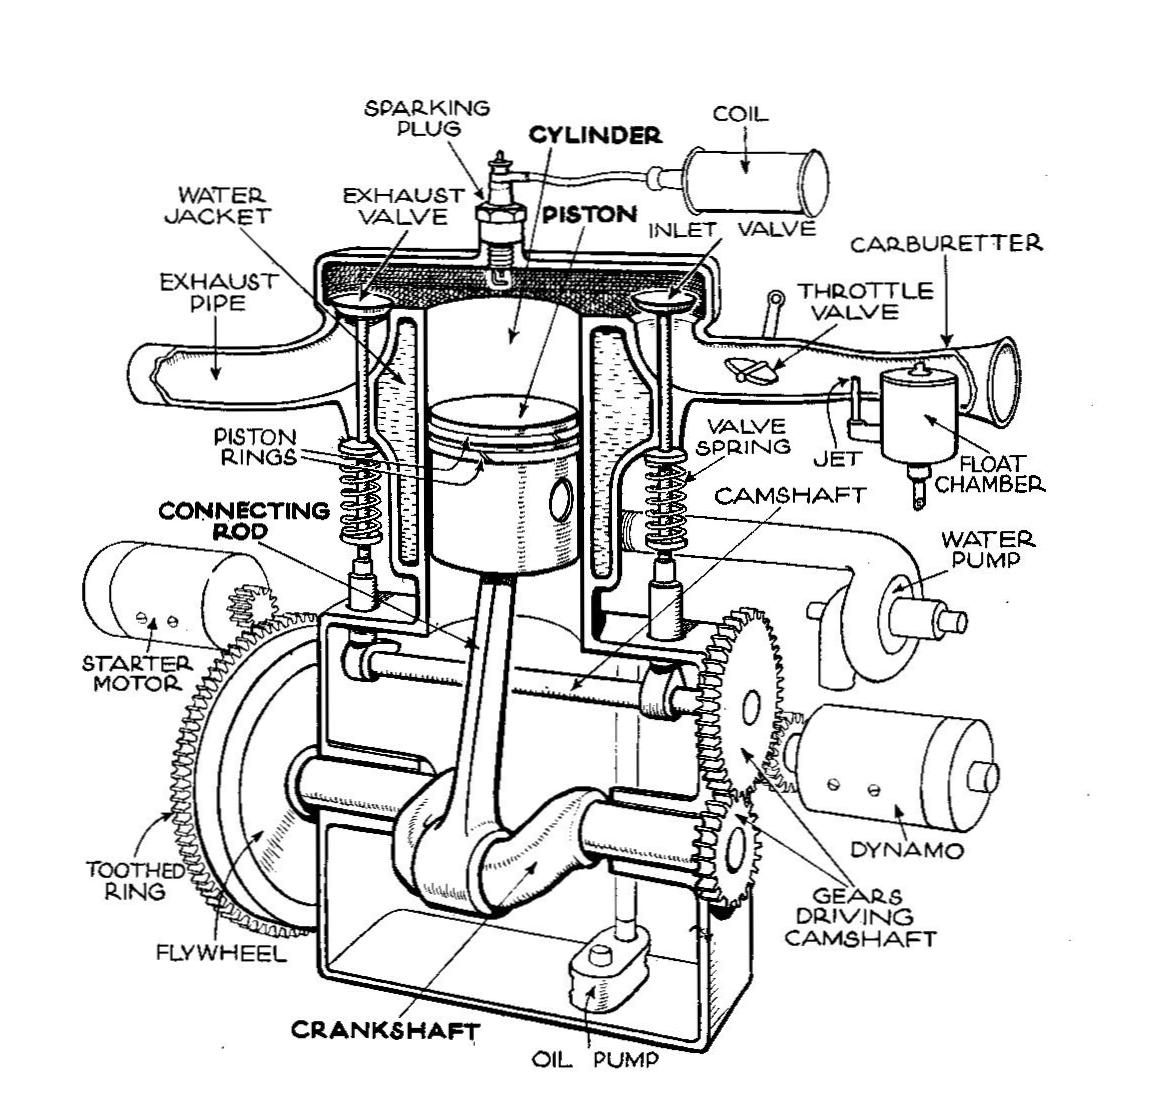 Pontiac 3 4 Engine Head Diagram Reinvent Your Wiring Diagrams Flathead Wikipedia Rh En Org 3100 Sfi V6 31